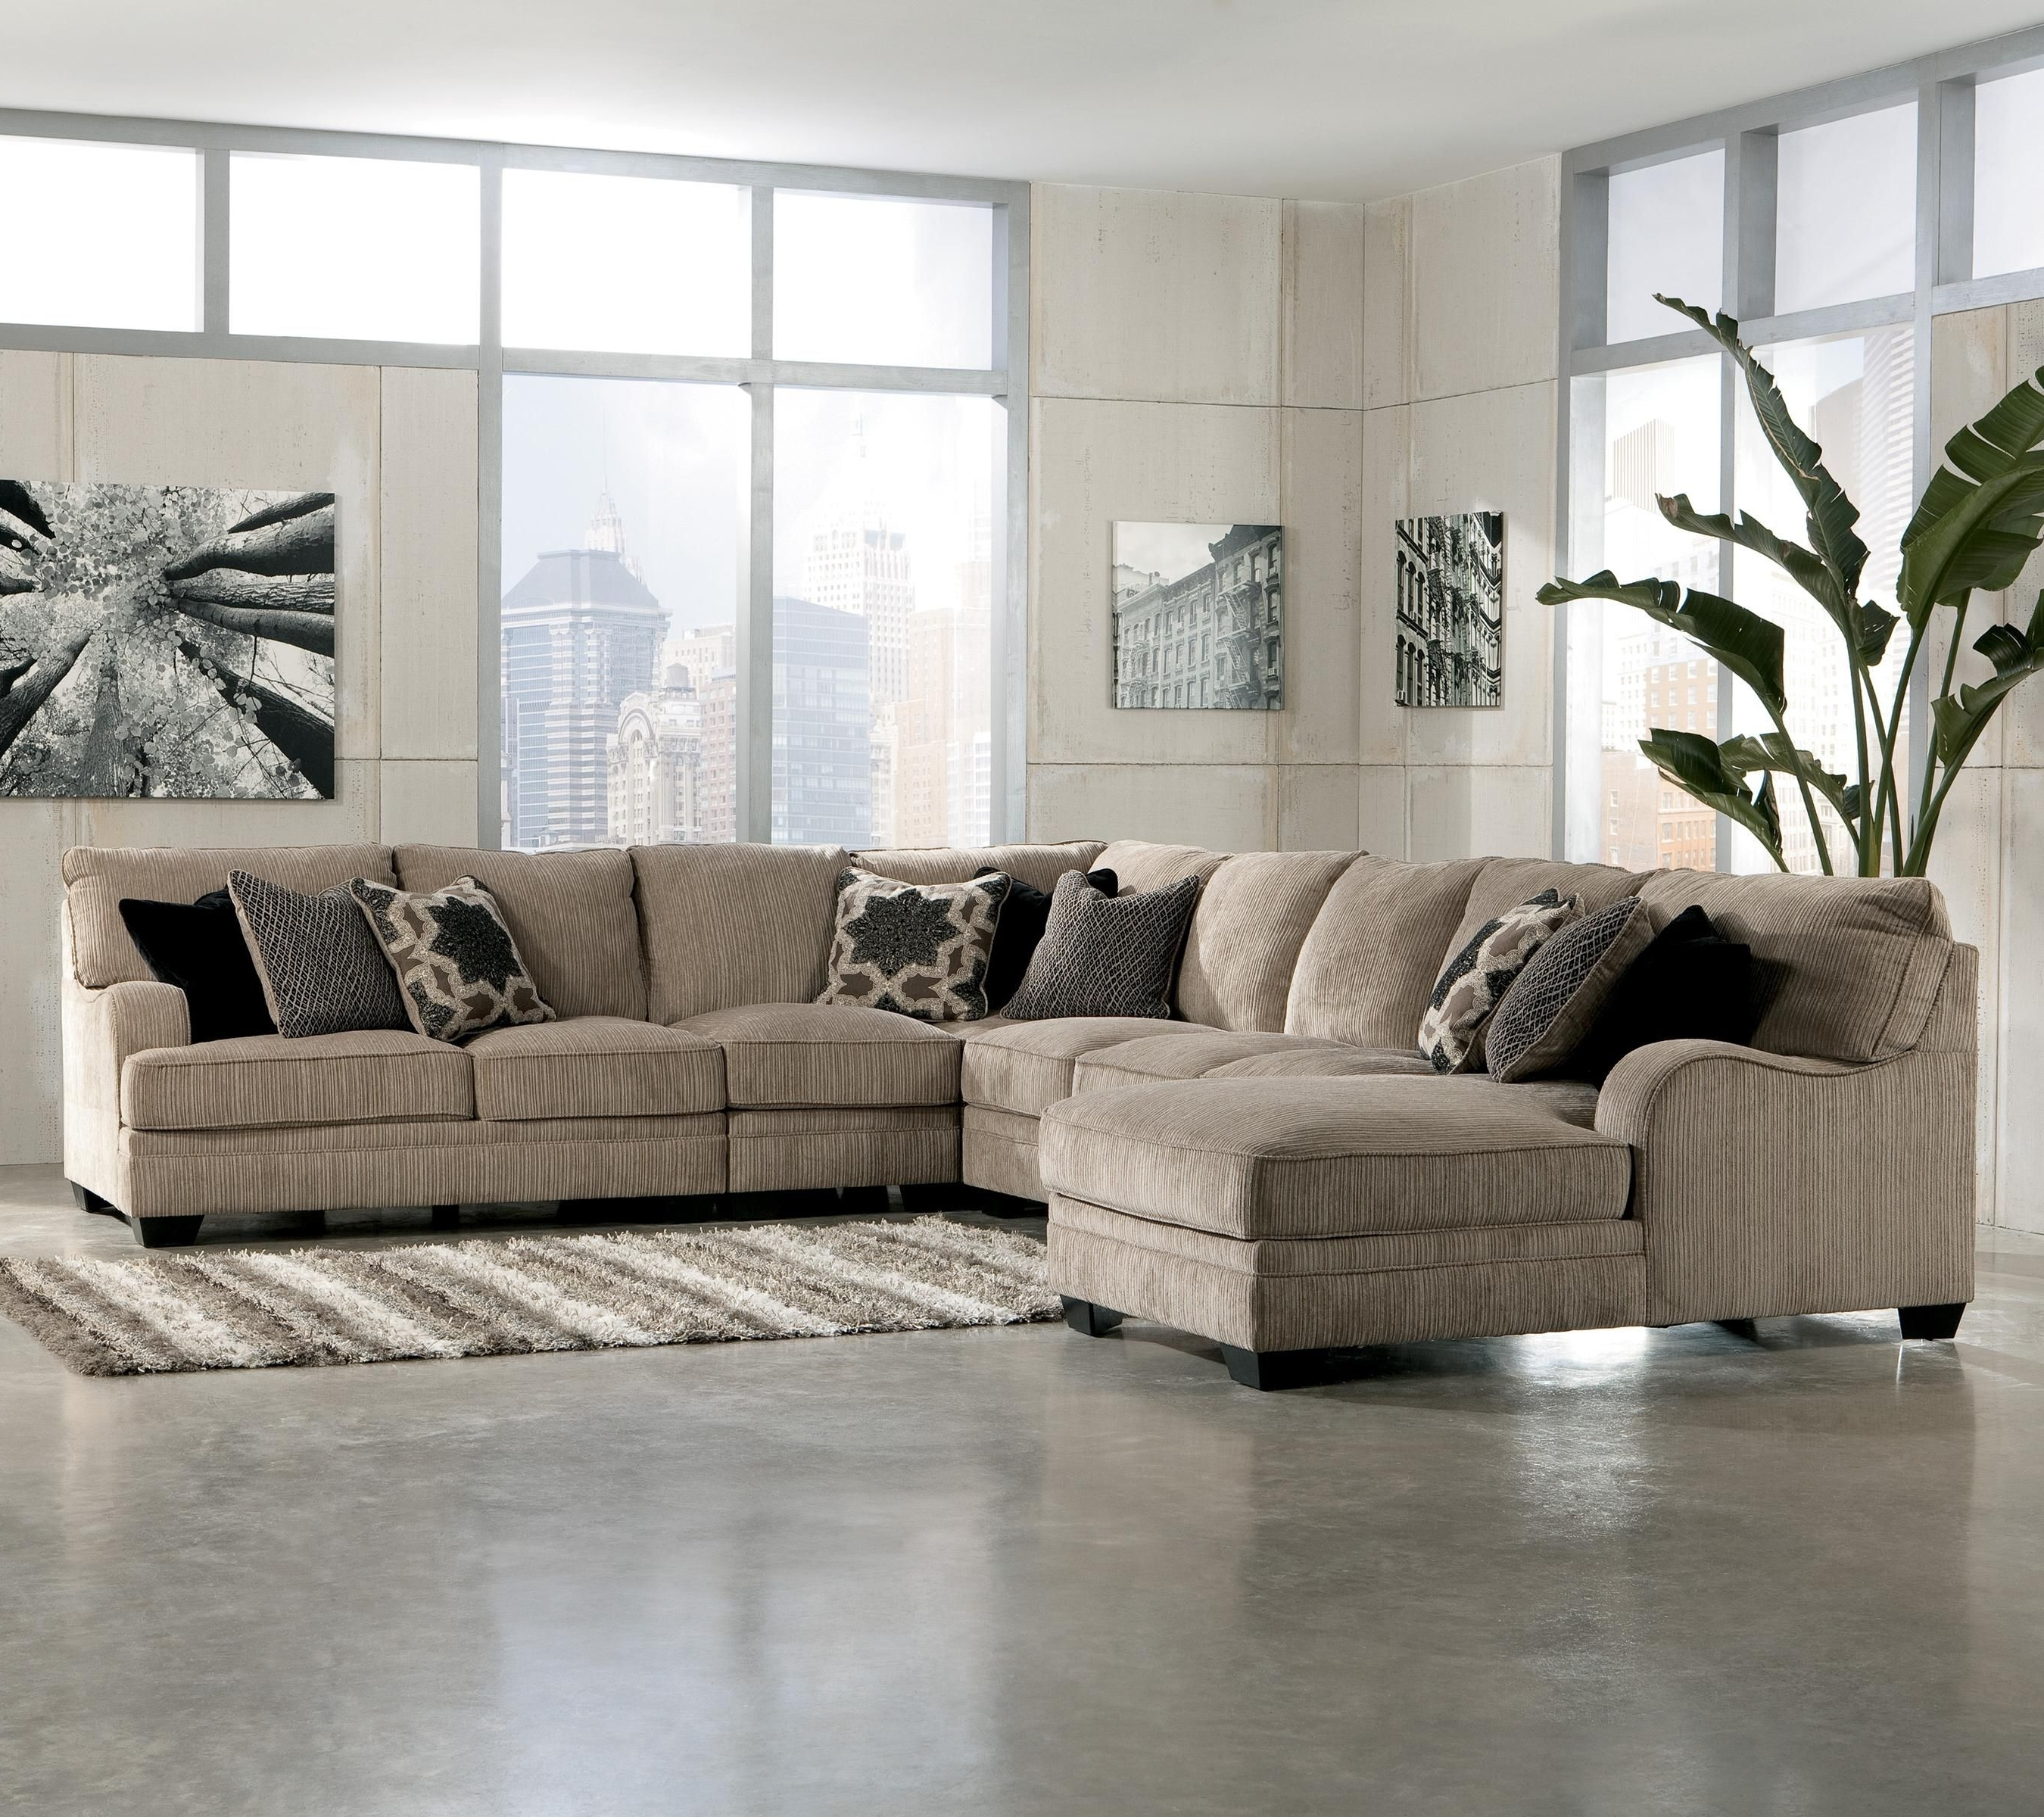 Trendy Sectional Sofas At Ashley Inside Living Room Sectional: Katisha 4 Piece Sectionalashley (View 14 of 15)